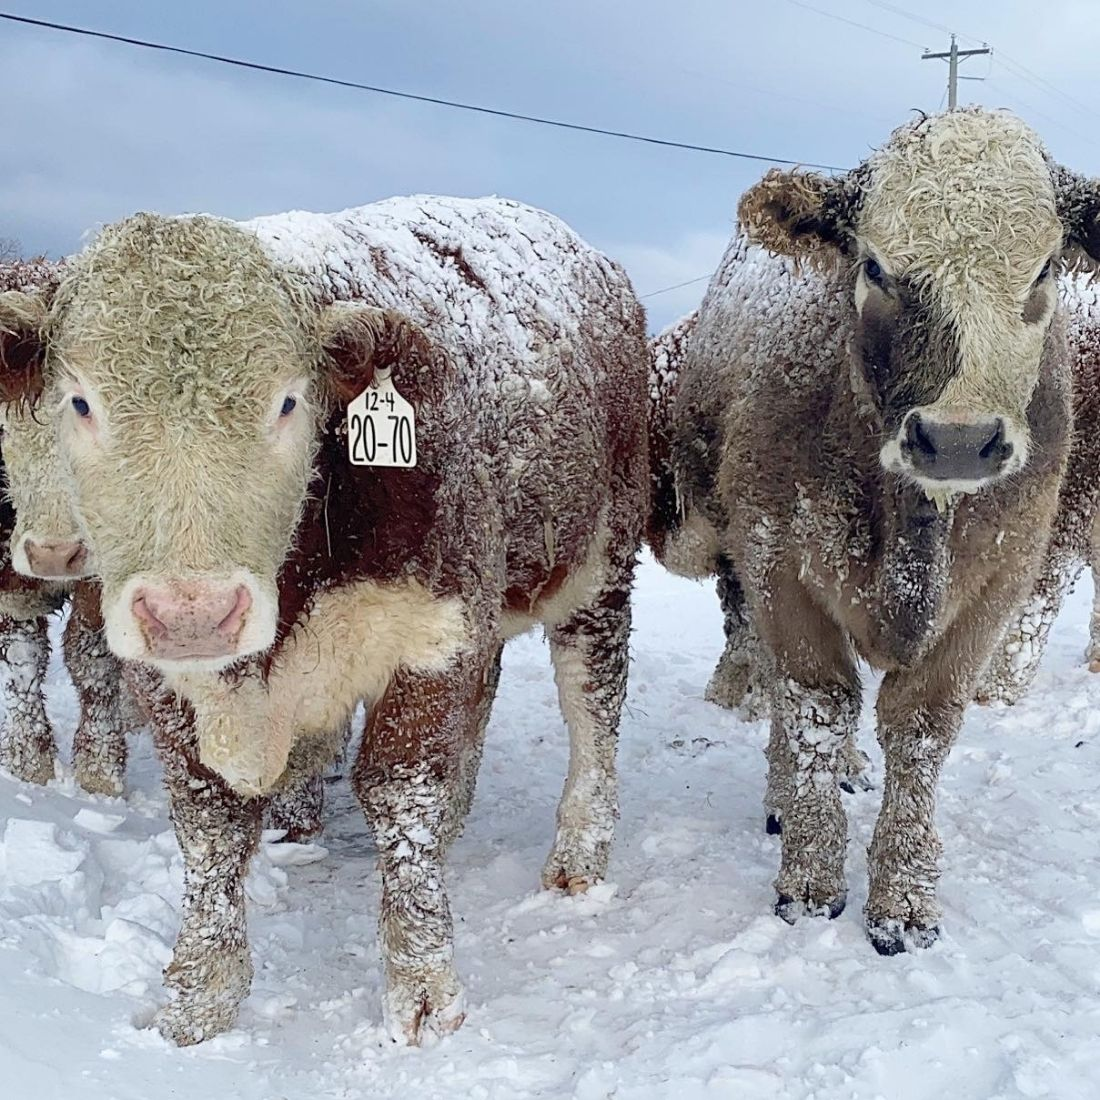 Hereford cross show steers in the winter